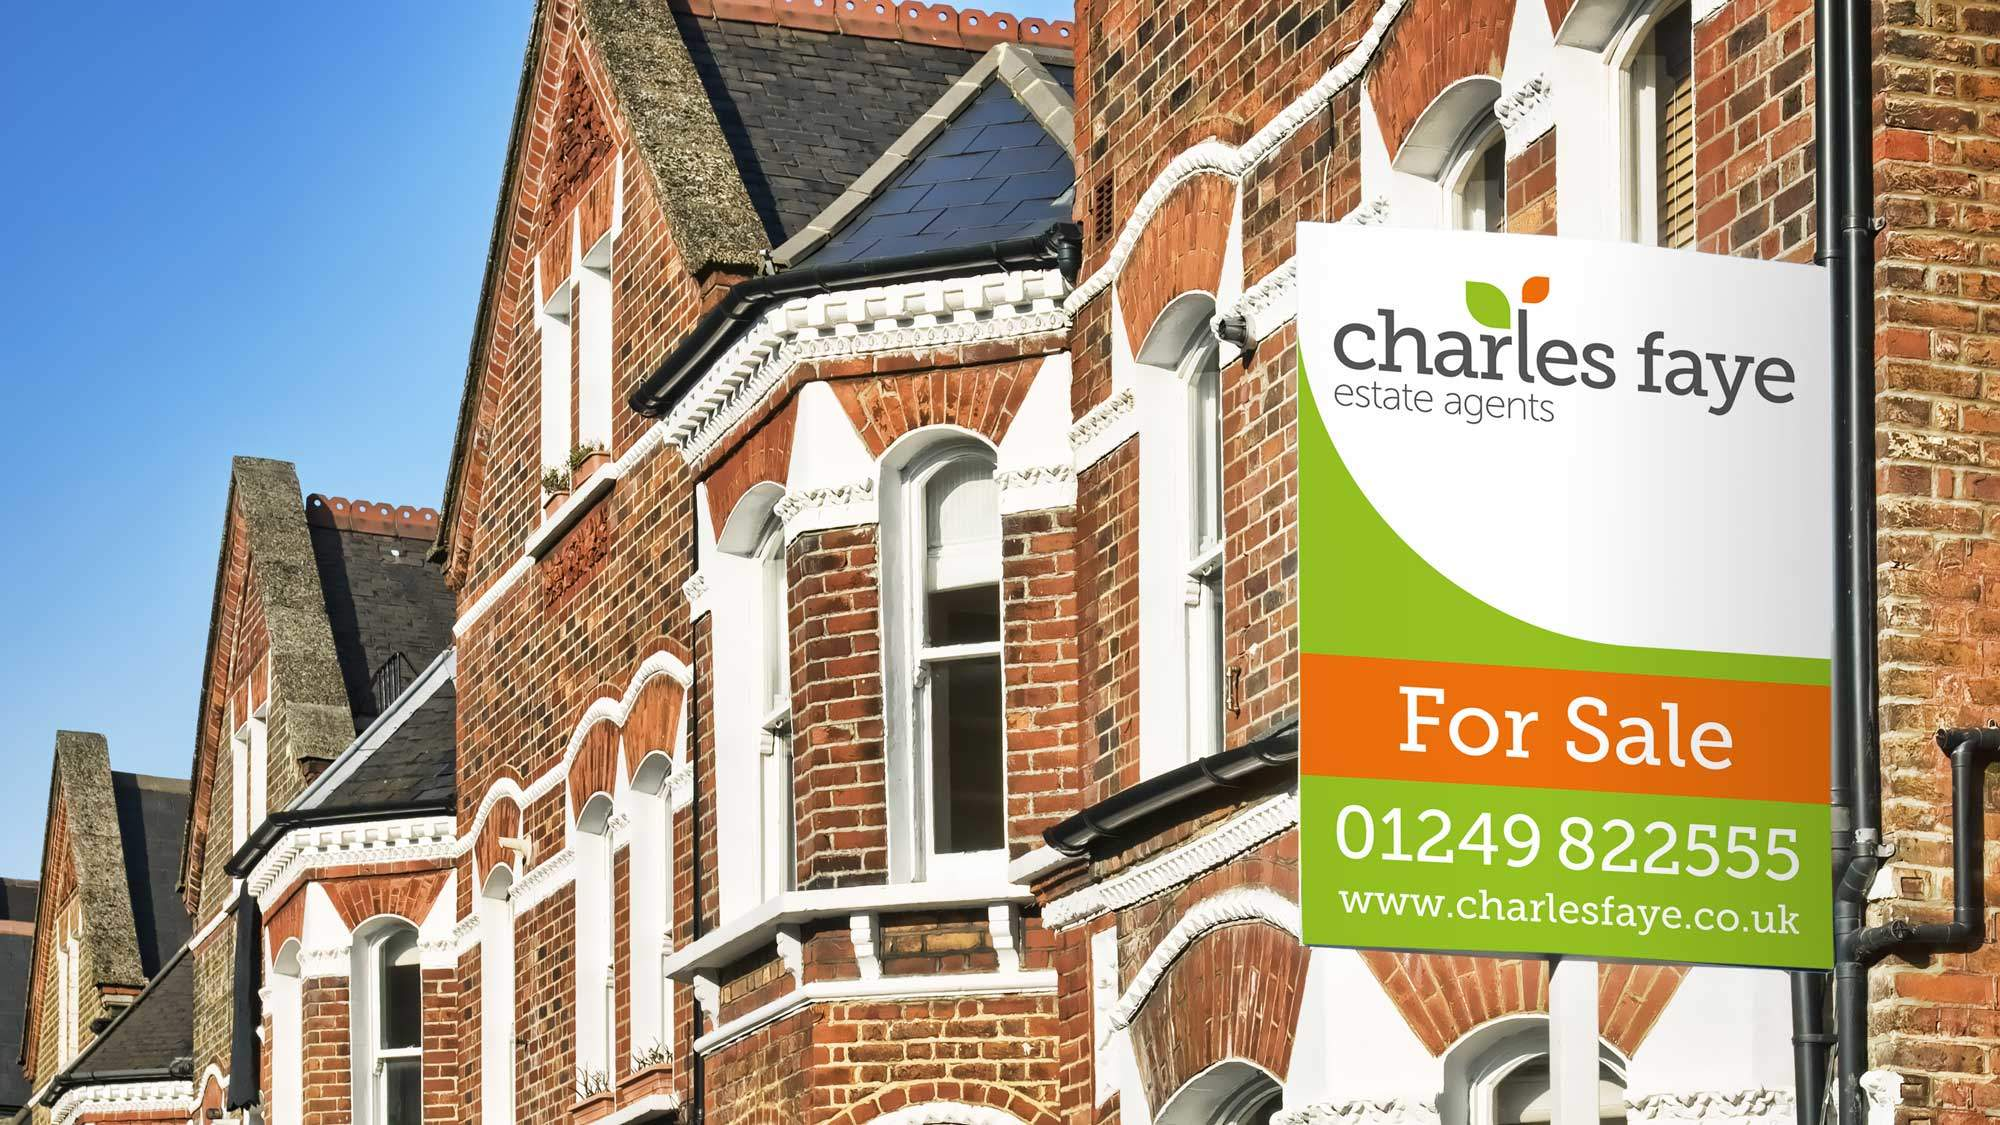 estate agent branding for sale sign charles faye